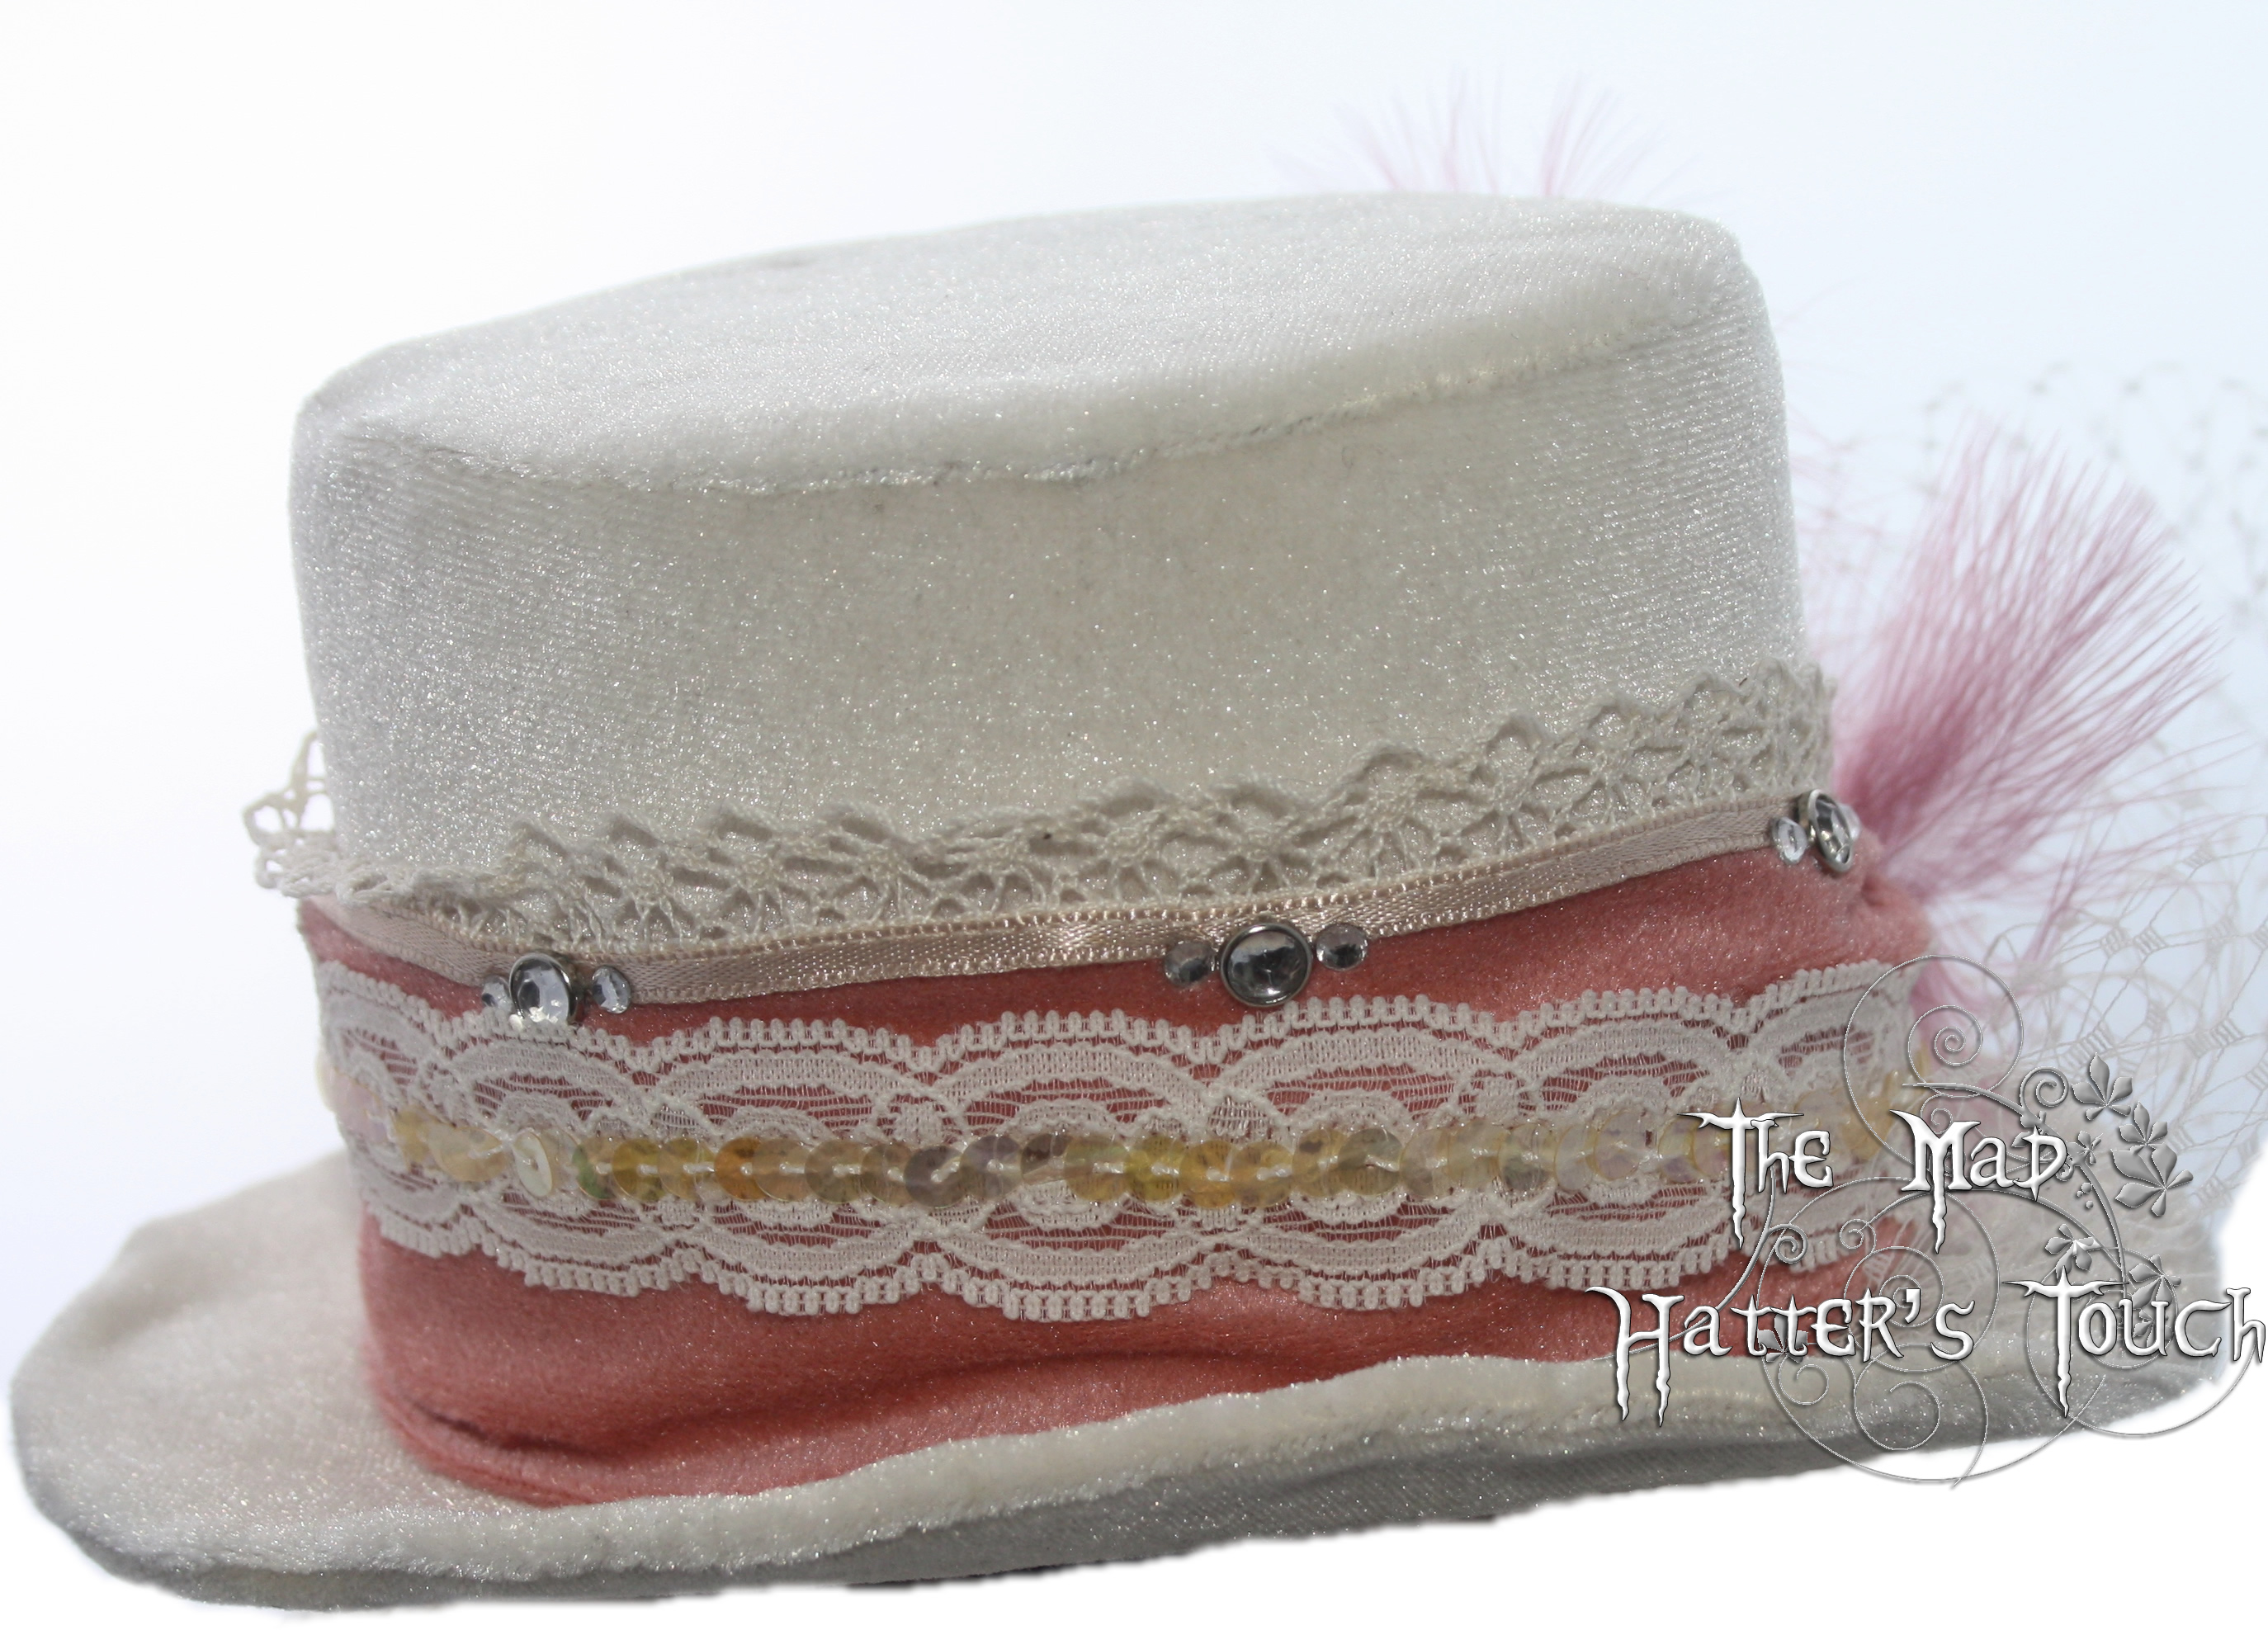 isabella_handmade_mini_top_hat_headwear_4.jpg